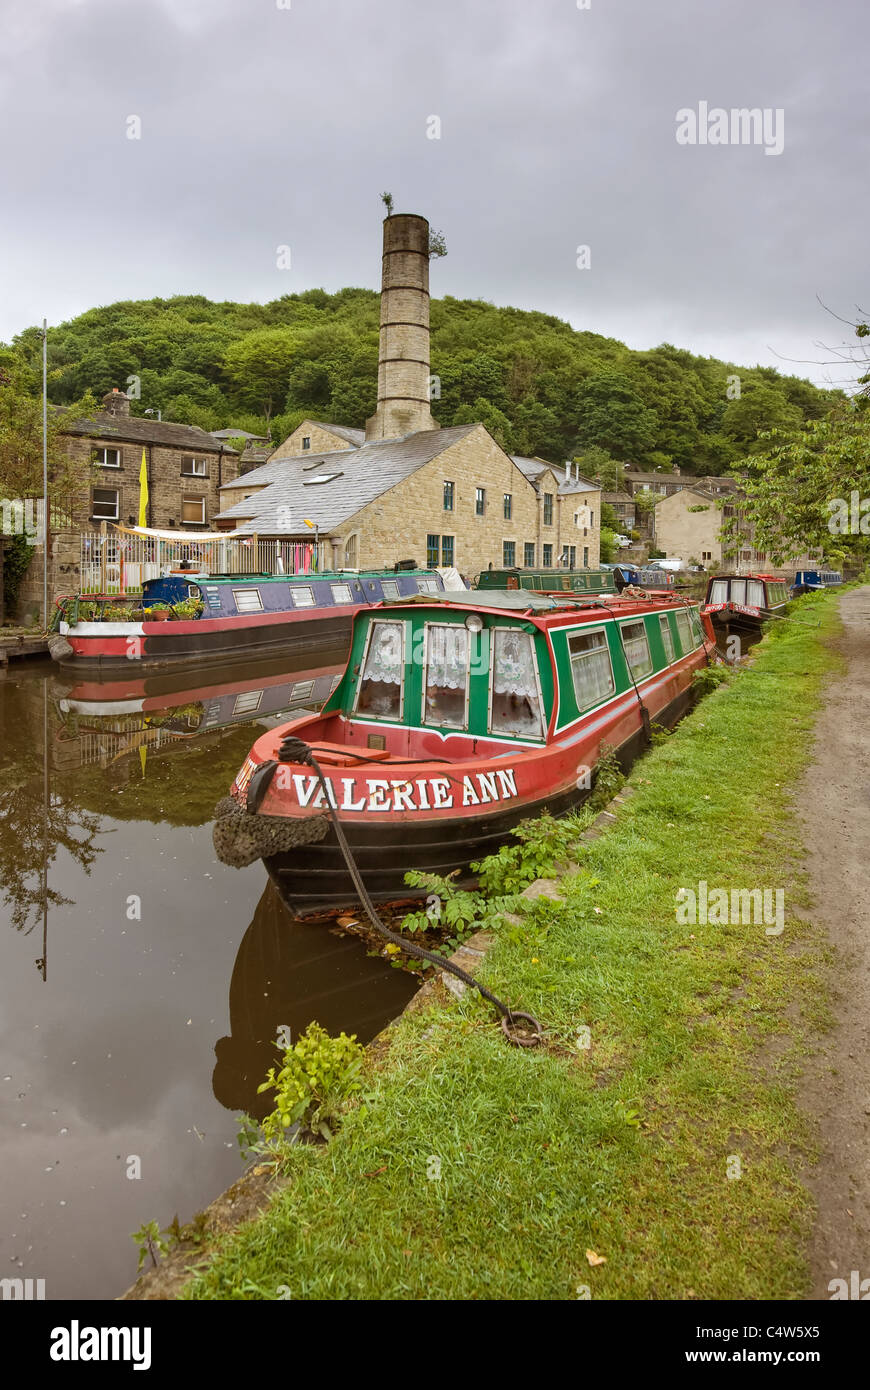 narrowboats at there moorings in hebden bridg - Stock Image